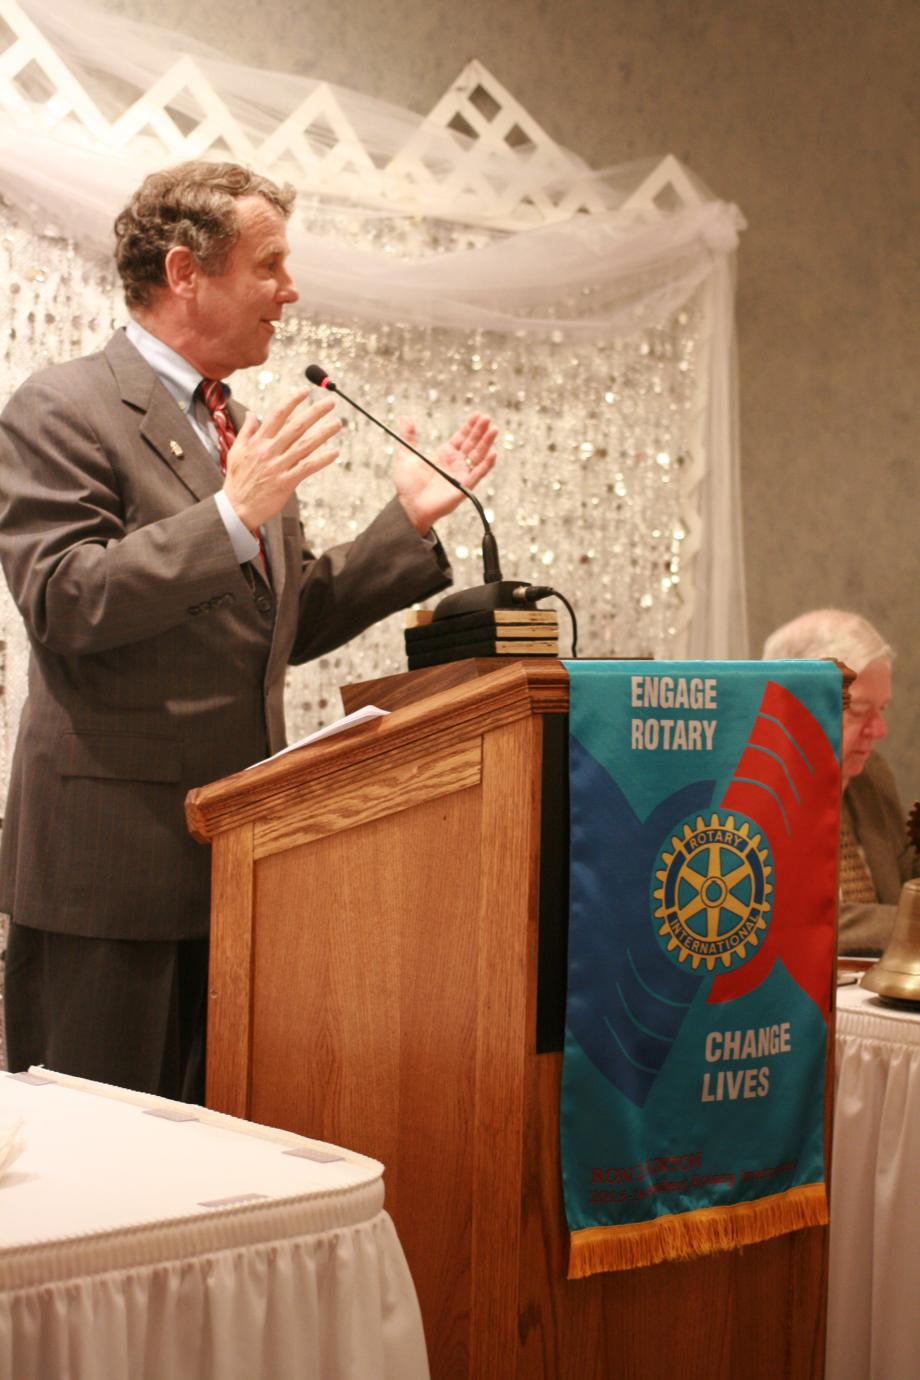 Speaking at Canton Rotary Club